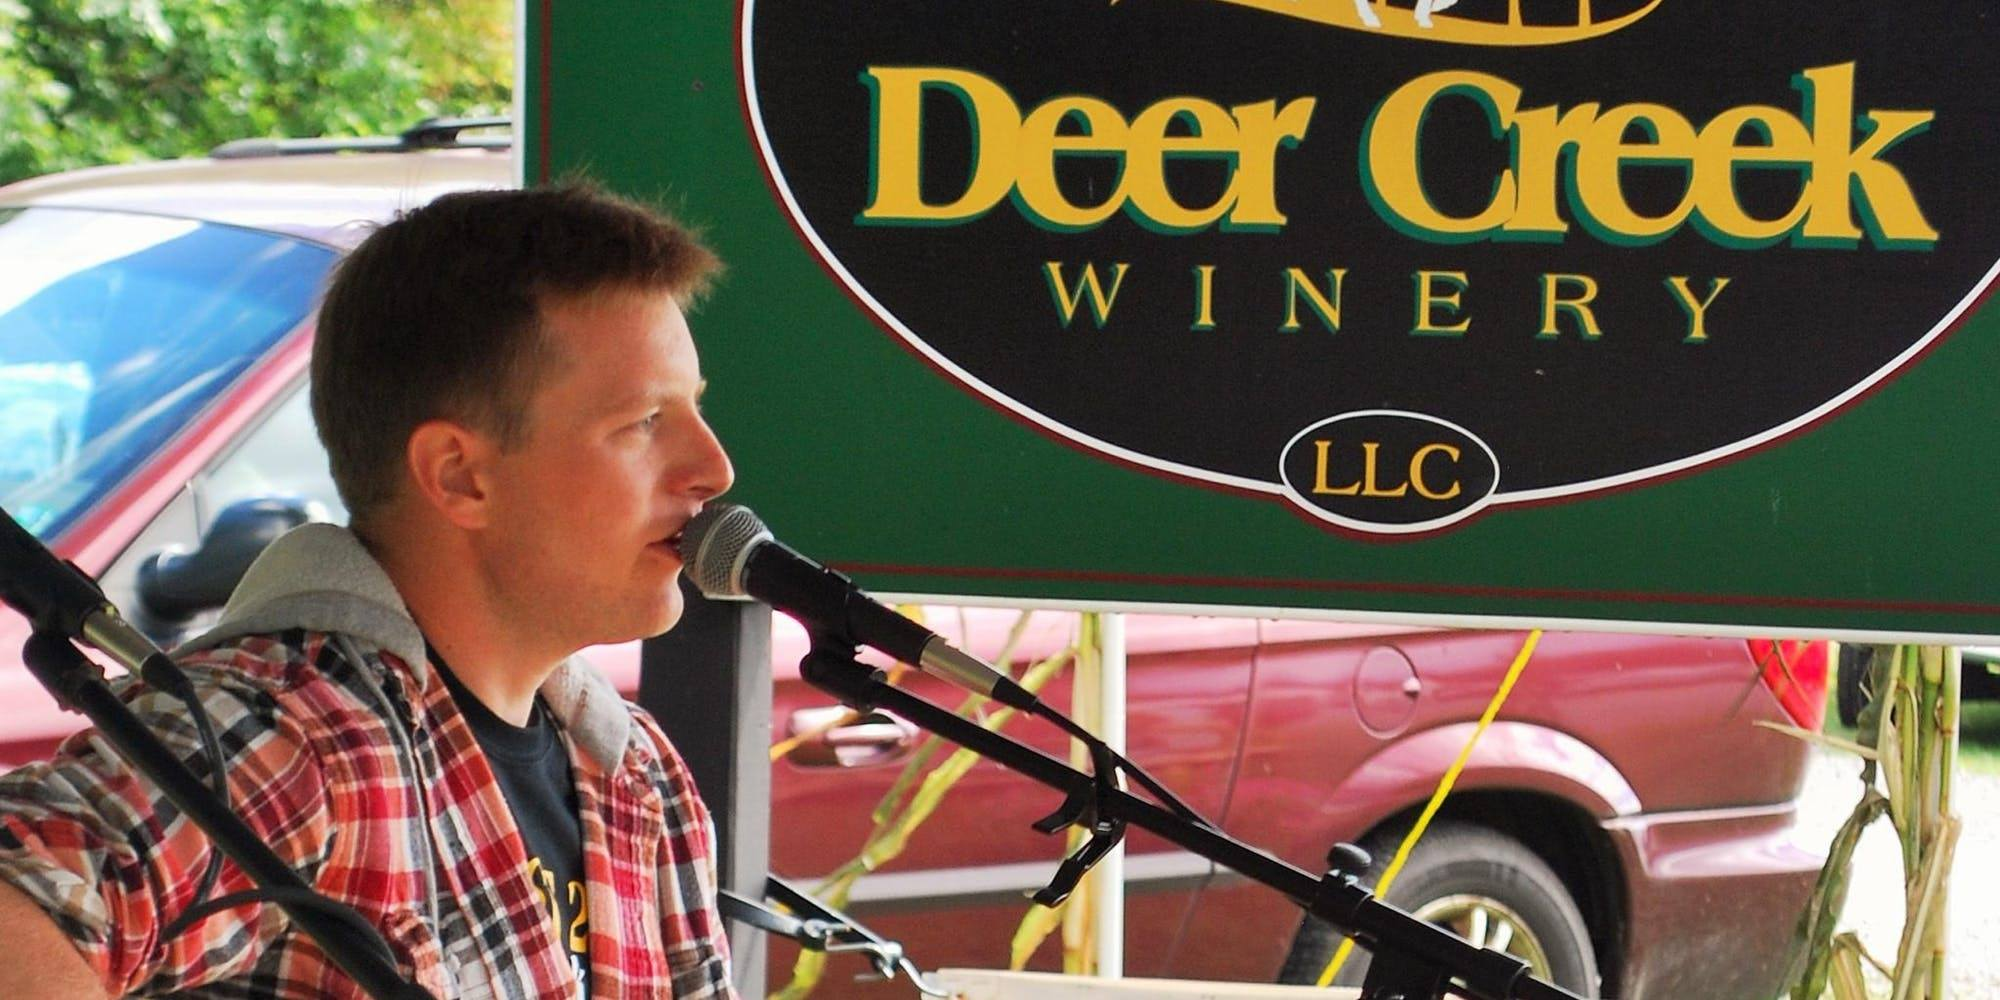 Deer Creek Winery 1